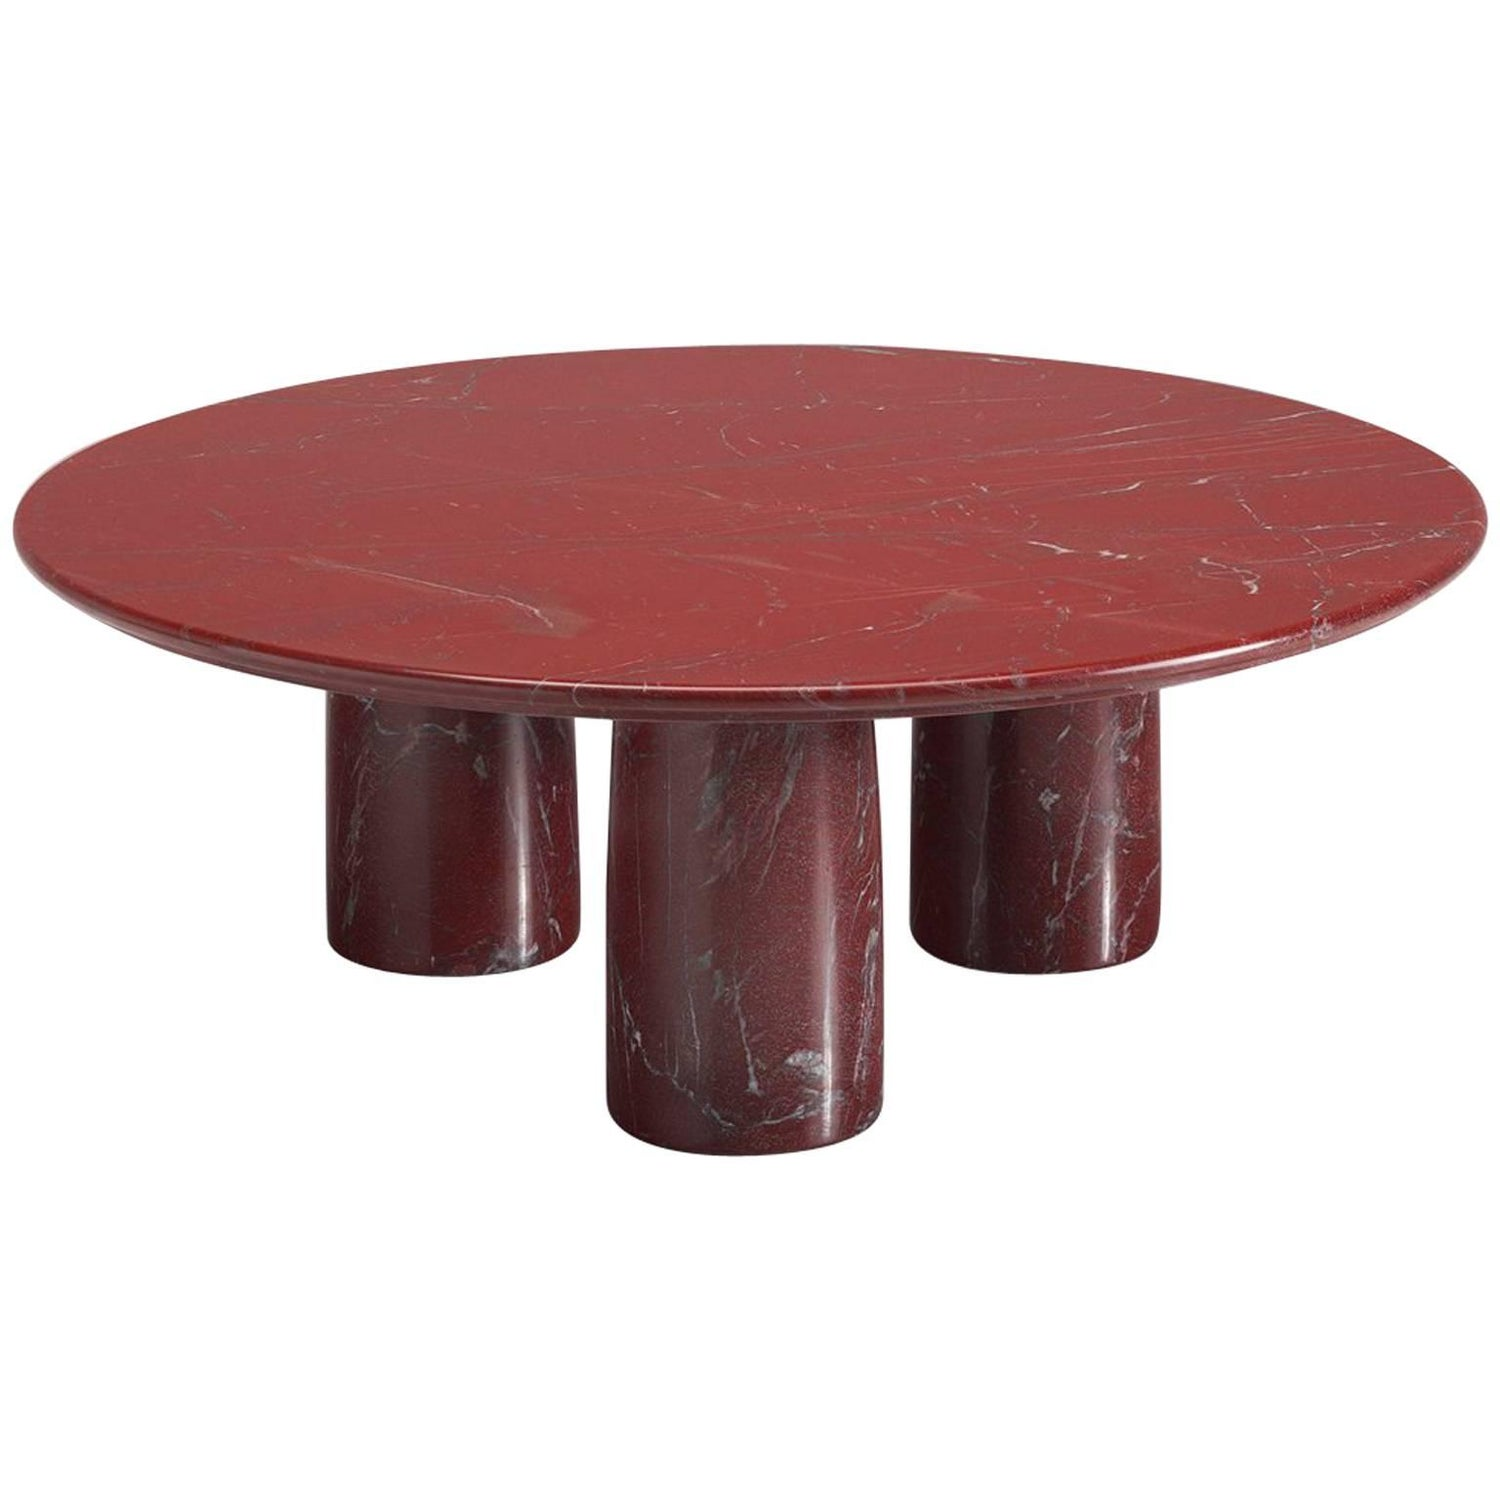 Mario Bellini for Cassina Red Limestone Side Table For Sale at 1stdibs